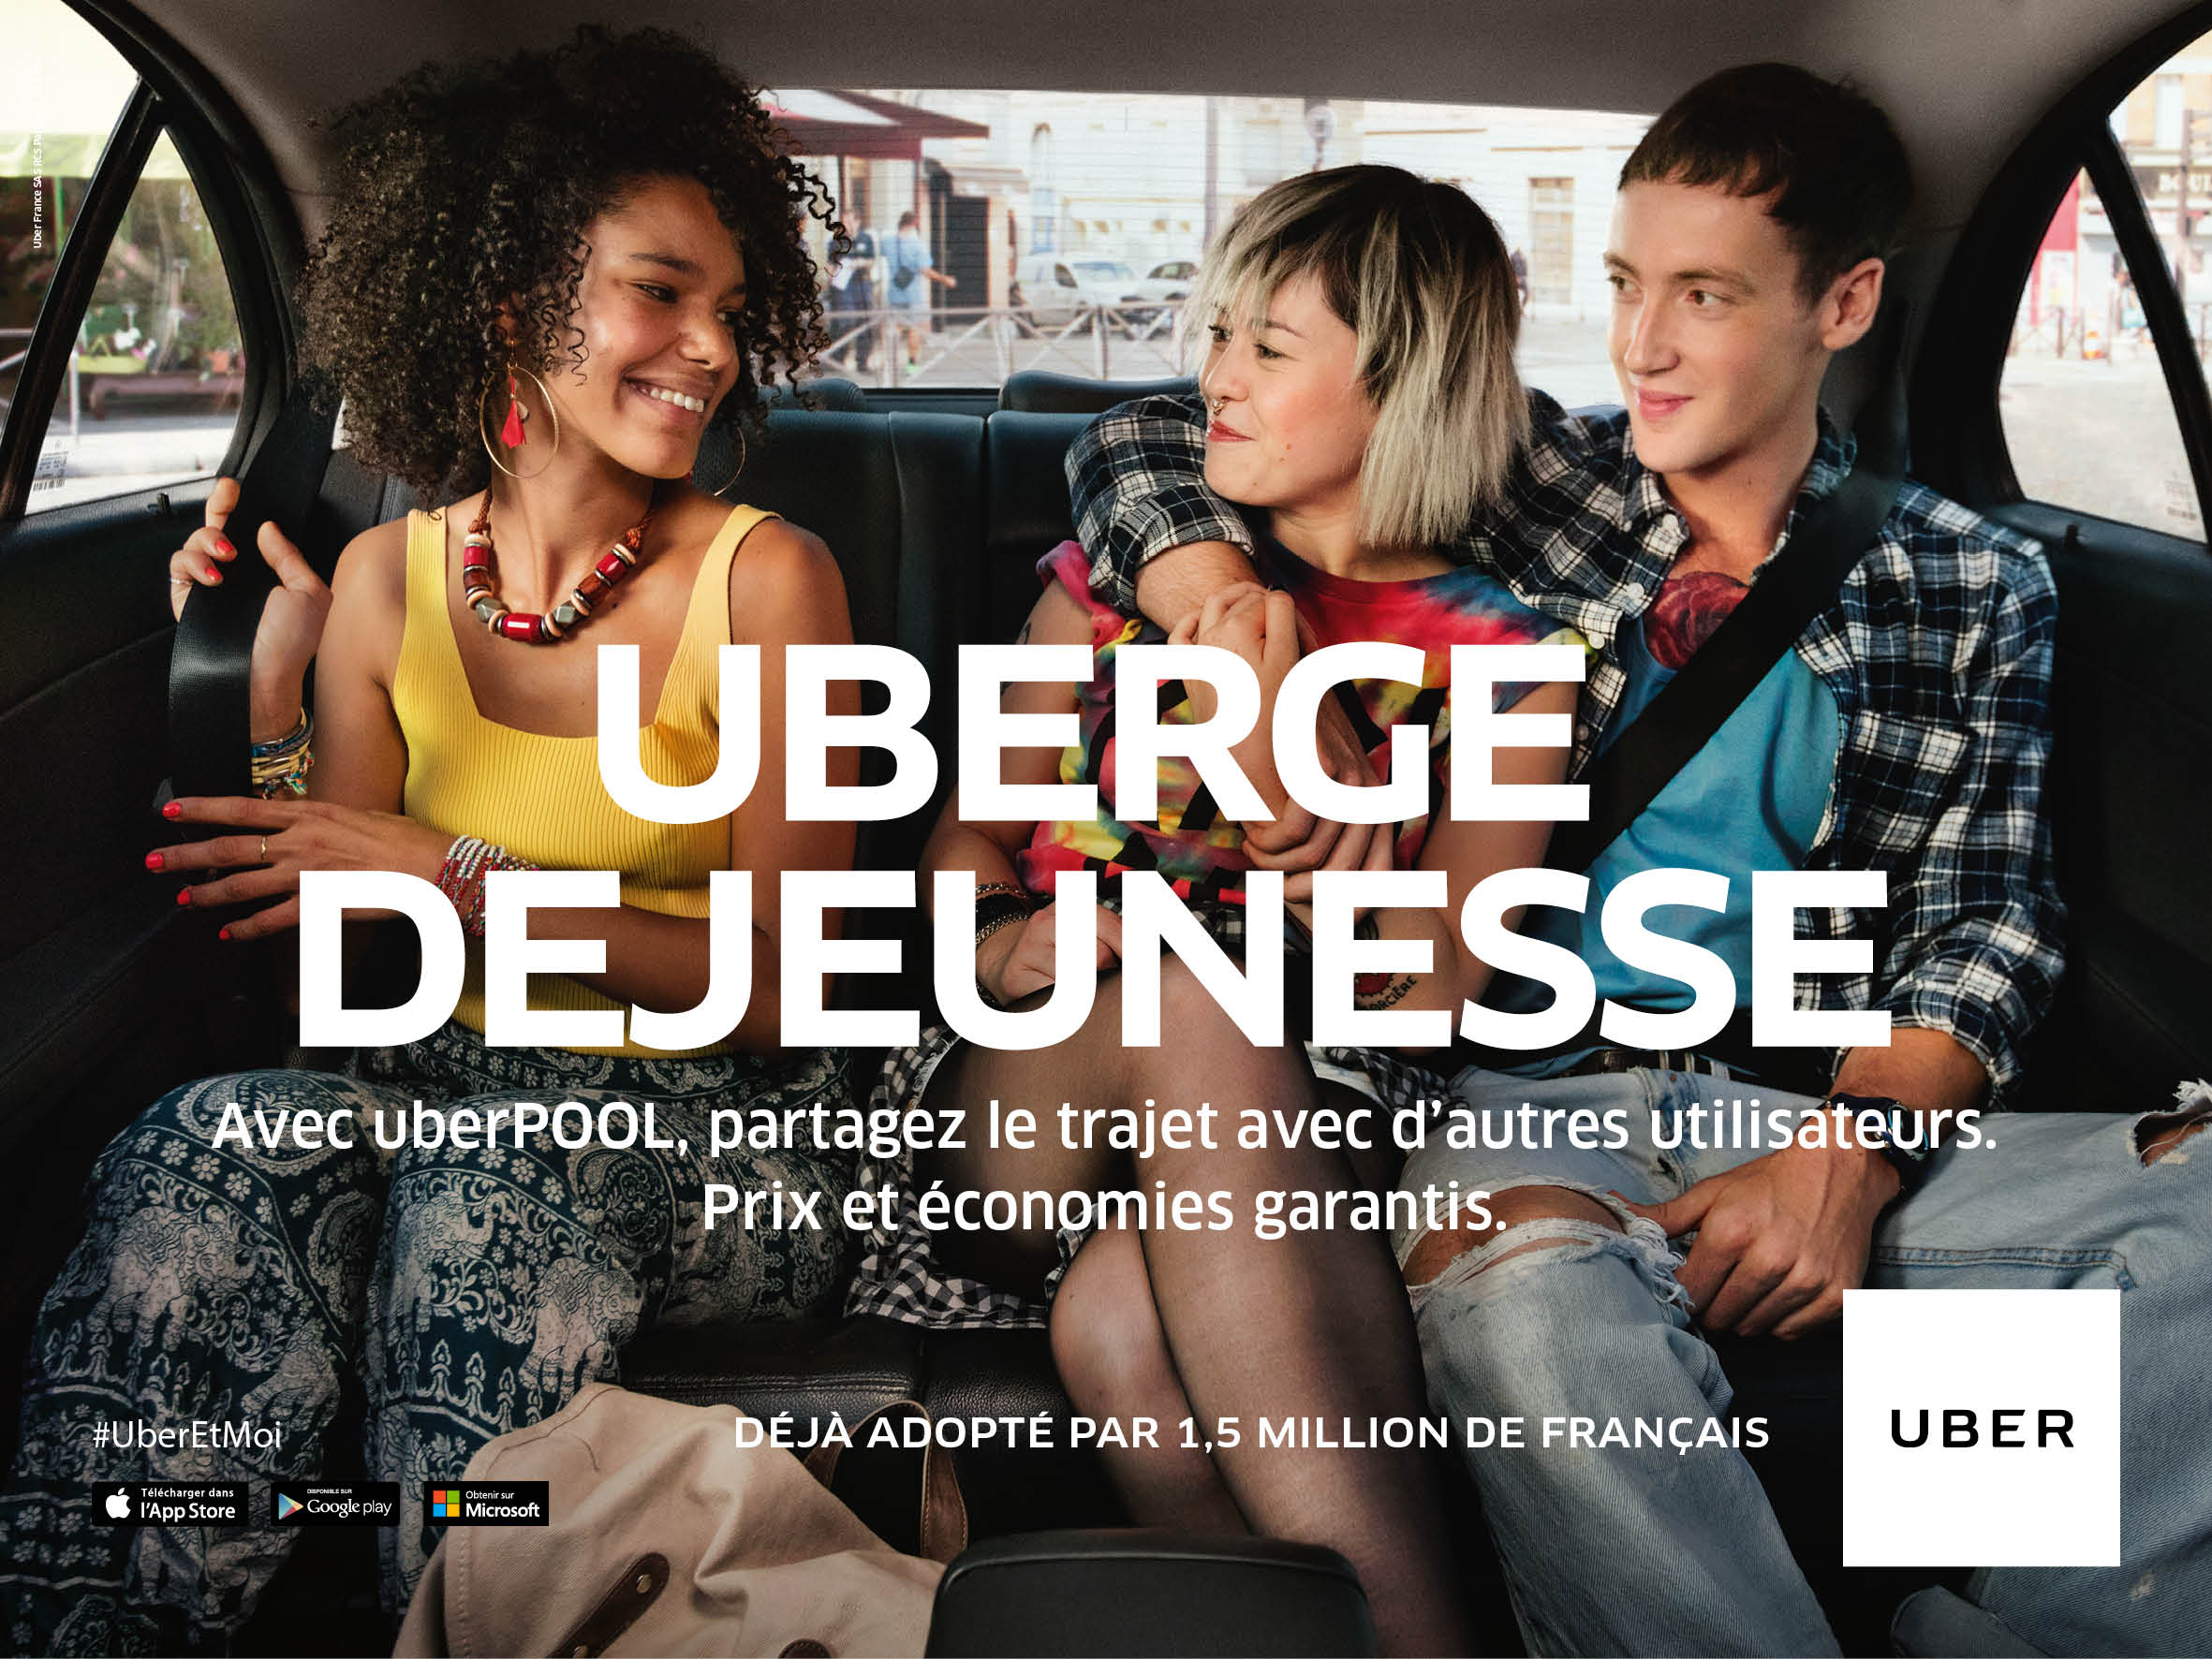 uber-france-publicite-marketing-application-utilisateurs-passagers-mars-2016-agence-marcel-publicis-4